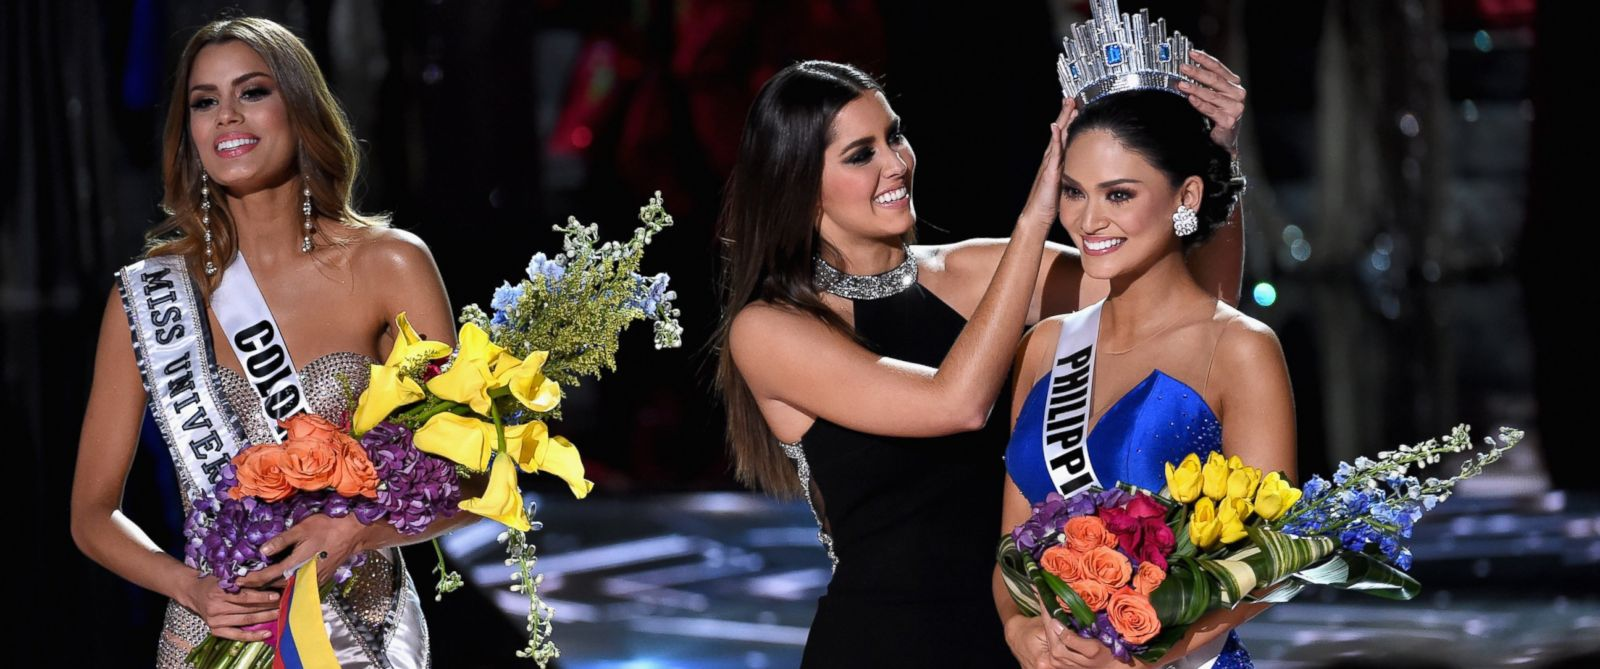 PHOTO:Miss Colombia 2015, Ariadna Gutierrez Arevalo, looks on as Miss Universe 2014 Paulina Vega crowns Miss Philippines 2015, Pia Alonzo Wurtzbach, the new Miss Universe during the 2015 Miss Universe Pageant , Dec. 20, 2015, in Las Vegas.